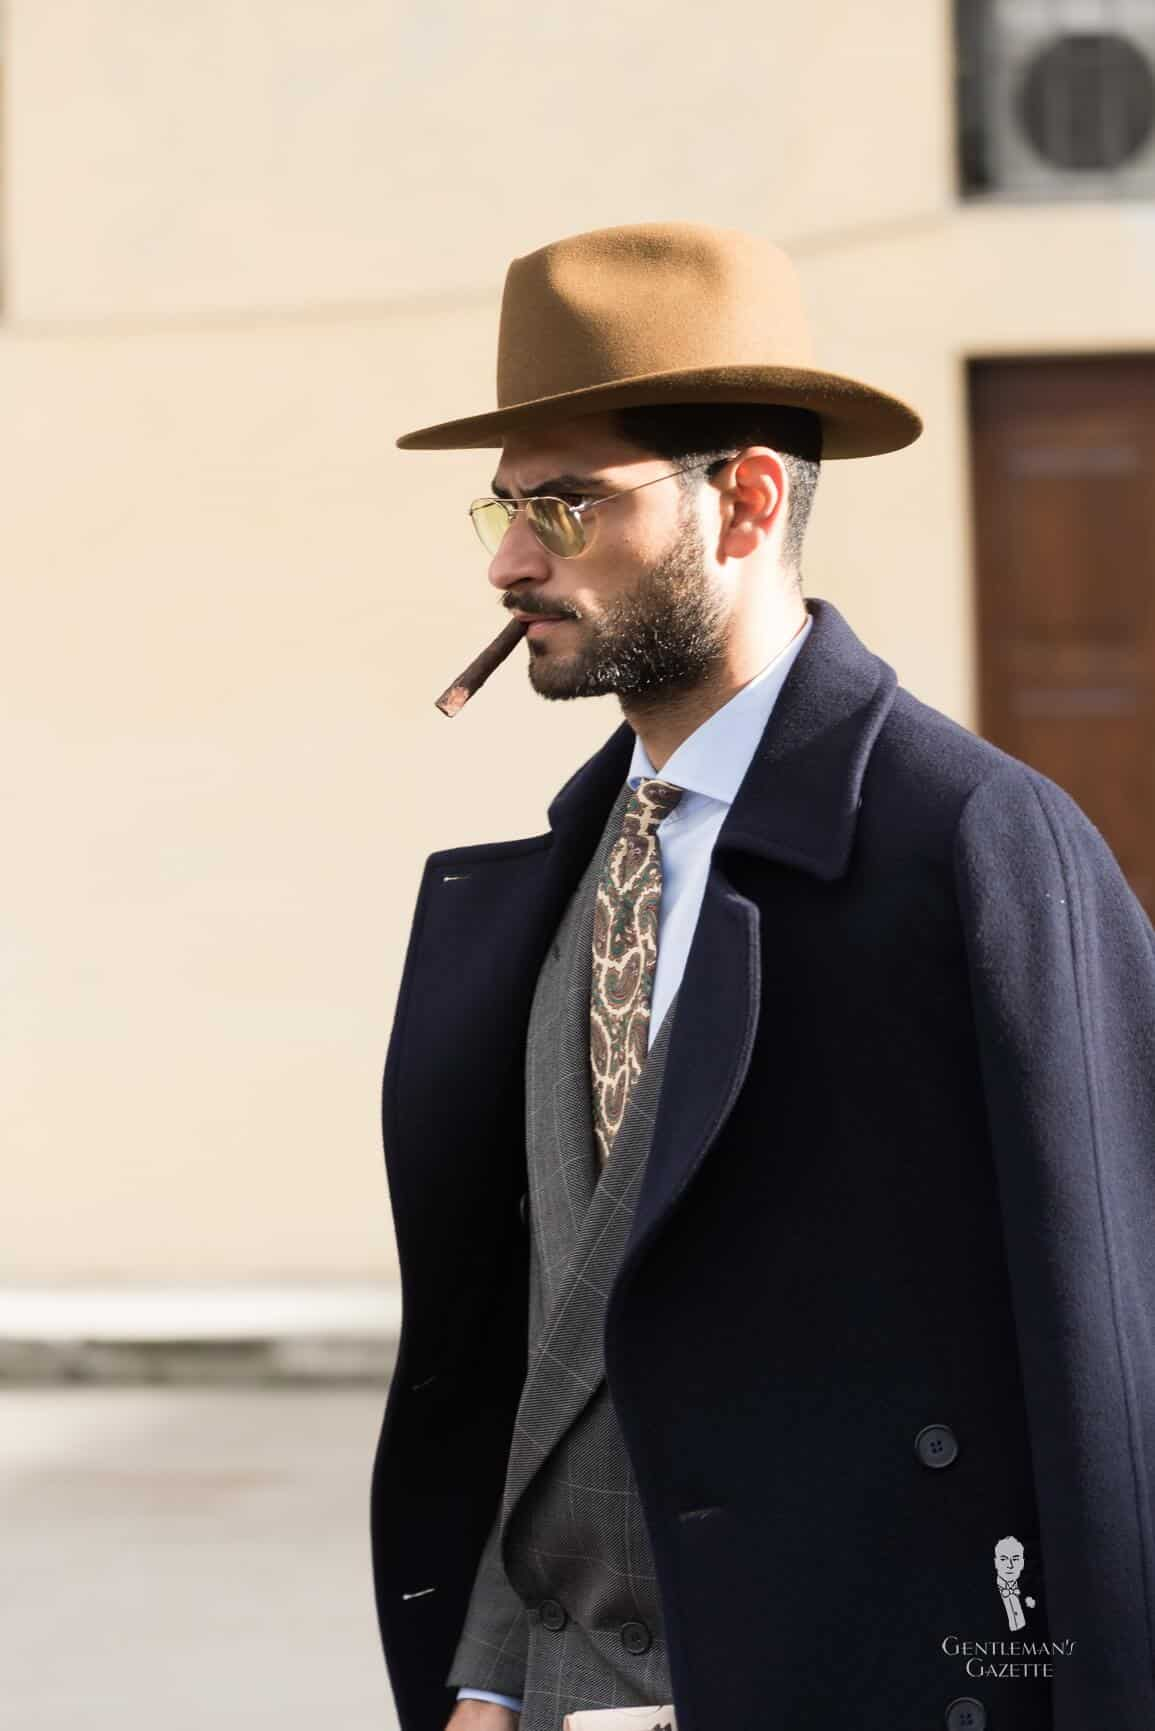 Pitti Uomo 89 Street Style Outfits Amp What You Can Learn